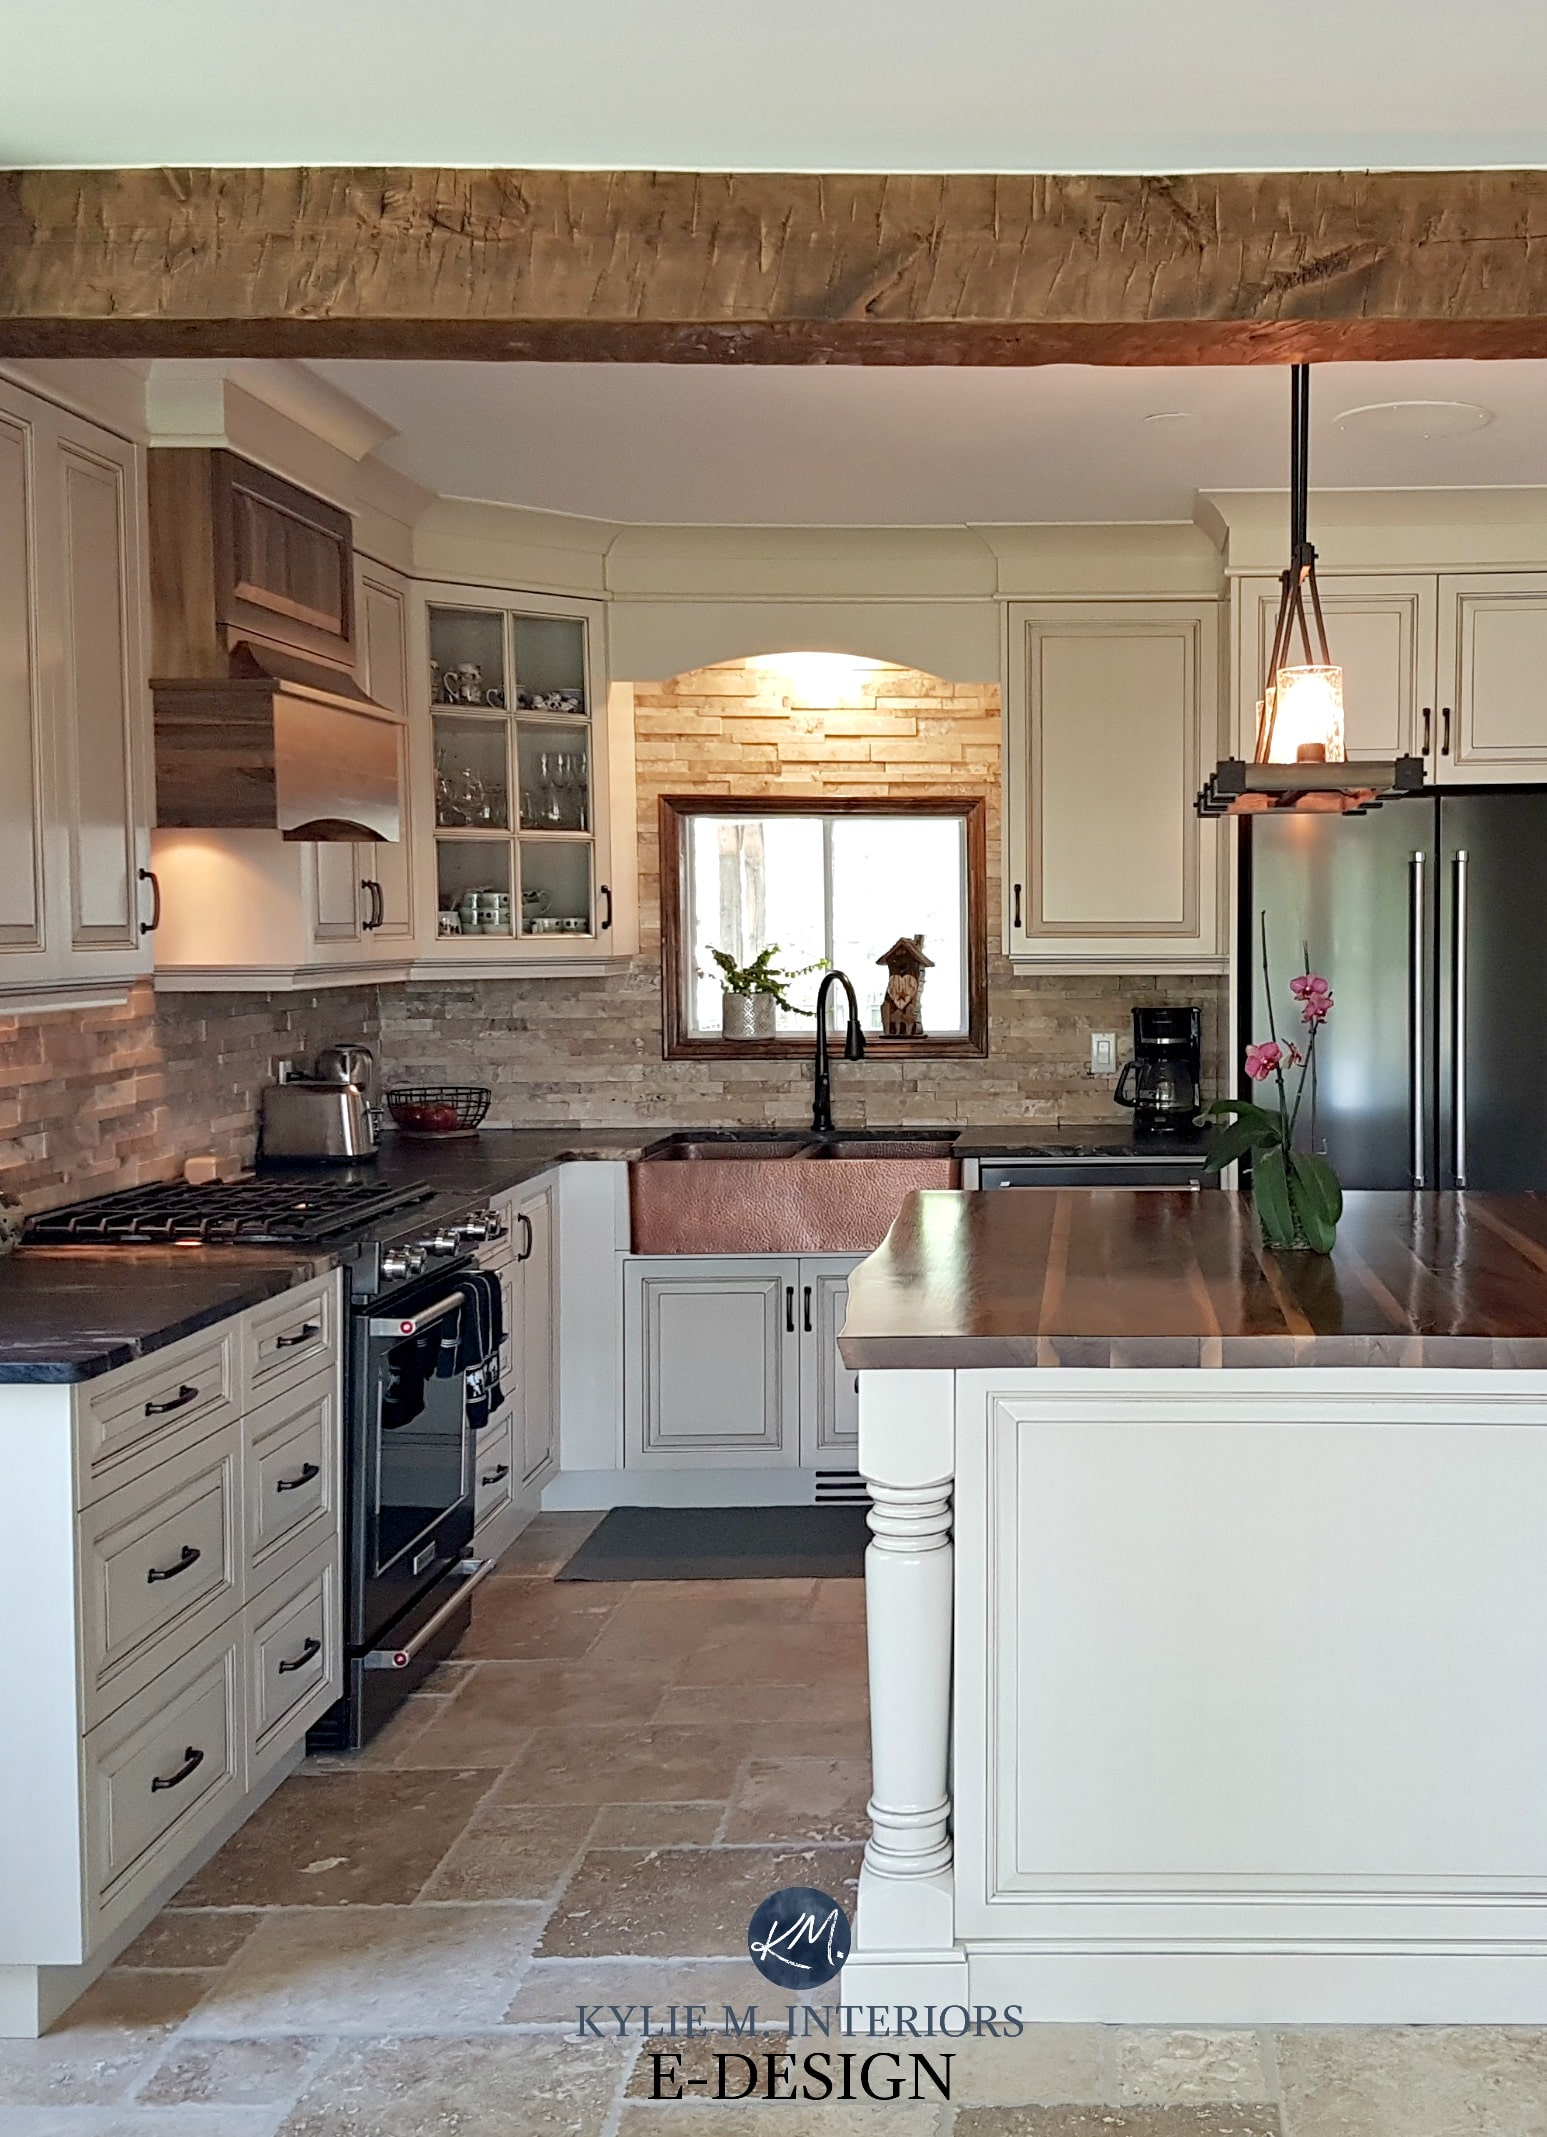 Kitchen cabinets painted Benjamin Moore Ballet White ...